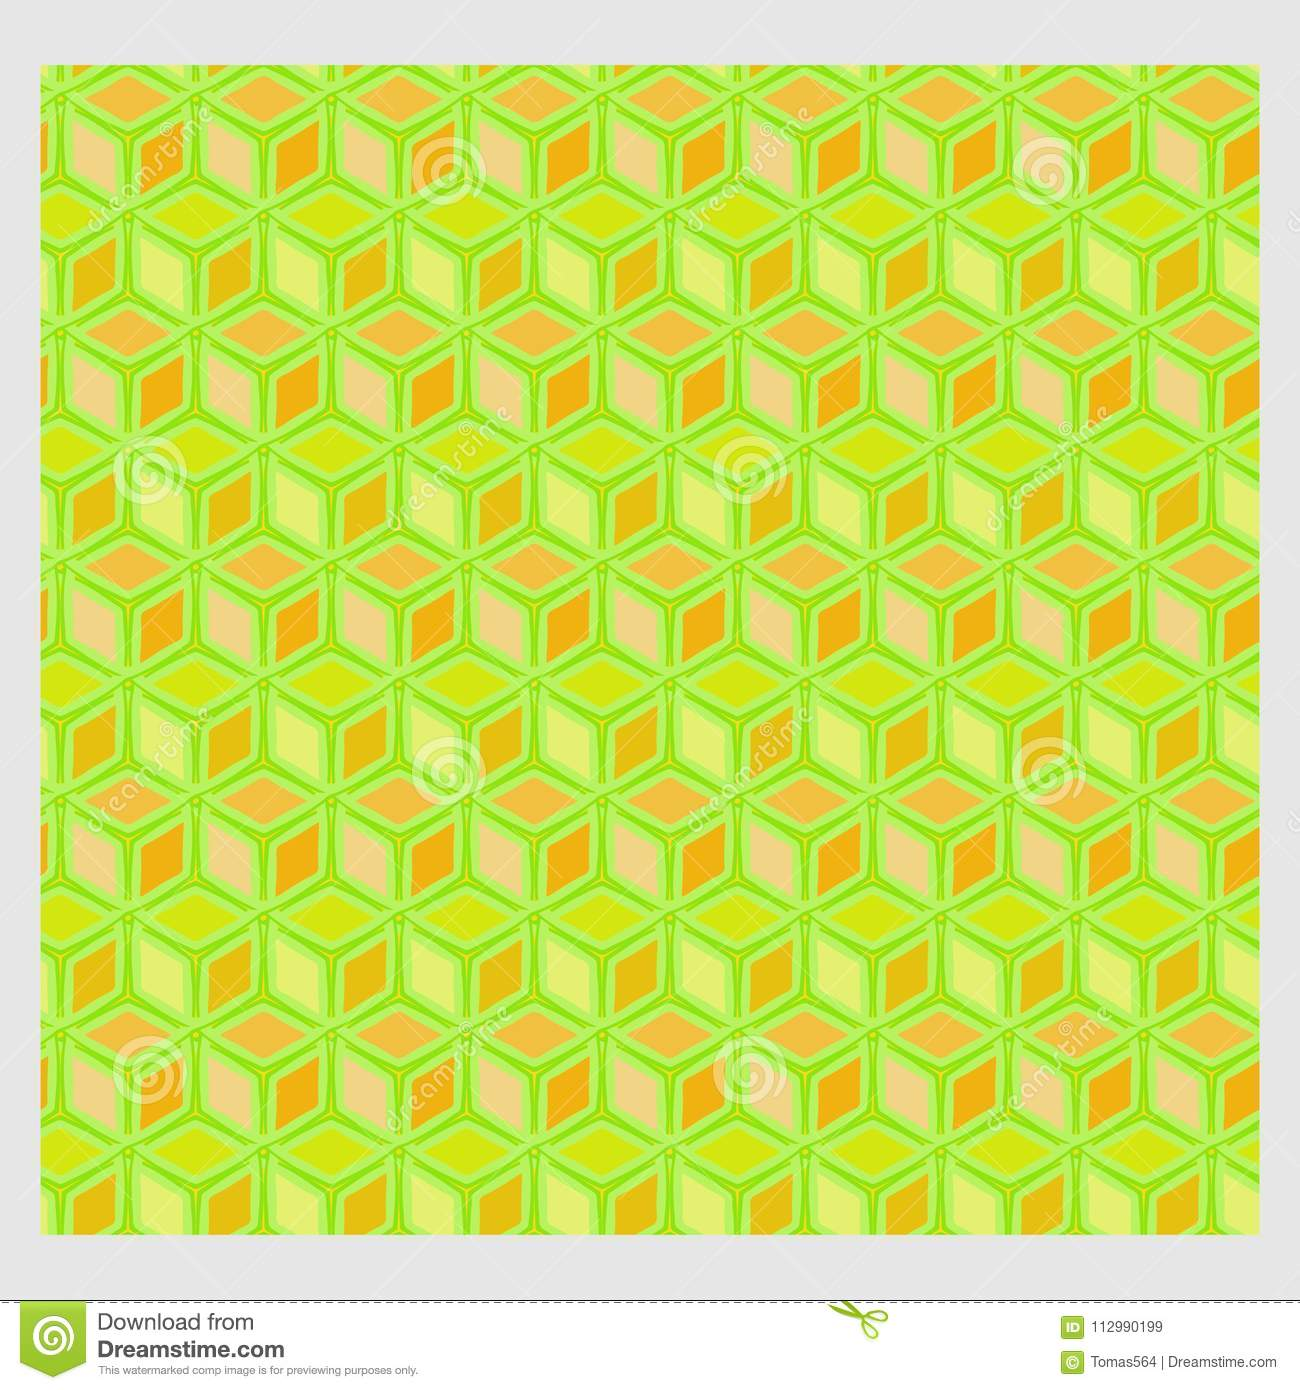 Netrivail abstract floral geometric pattern, background, vector seamless